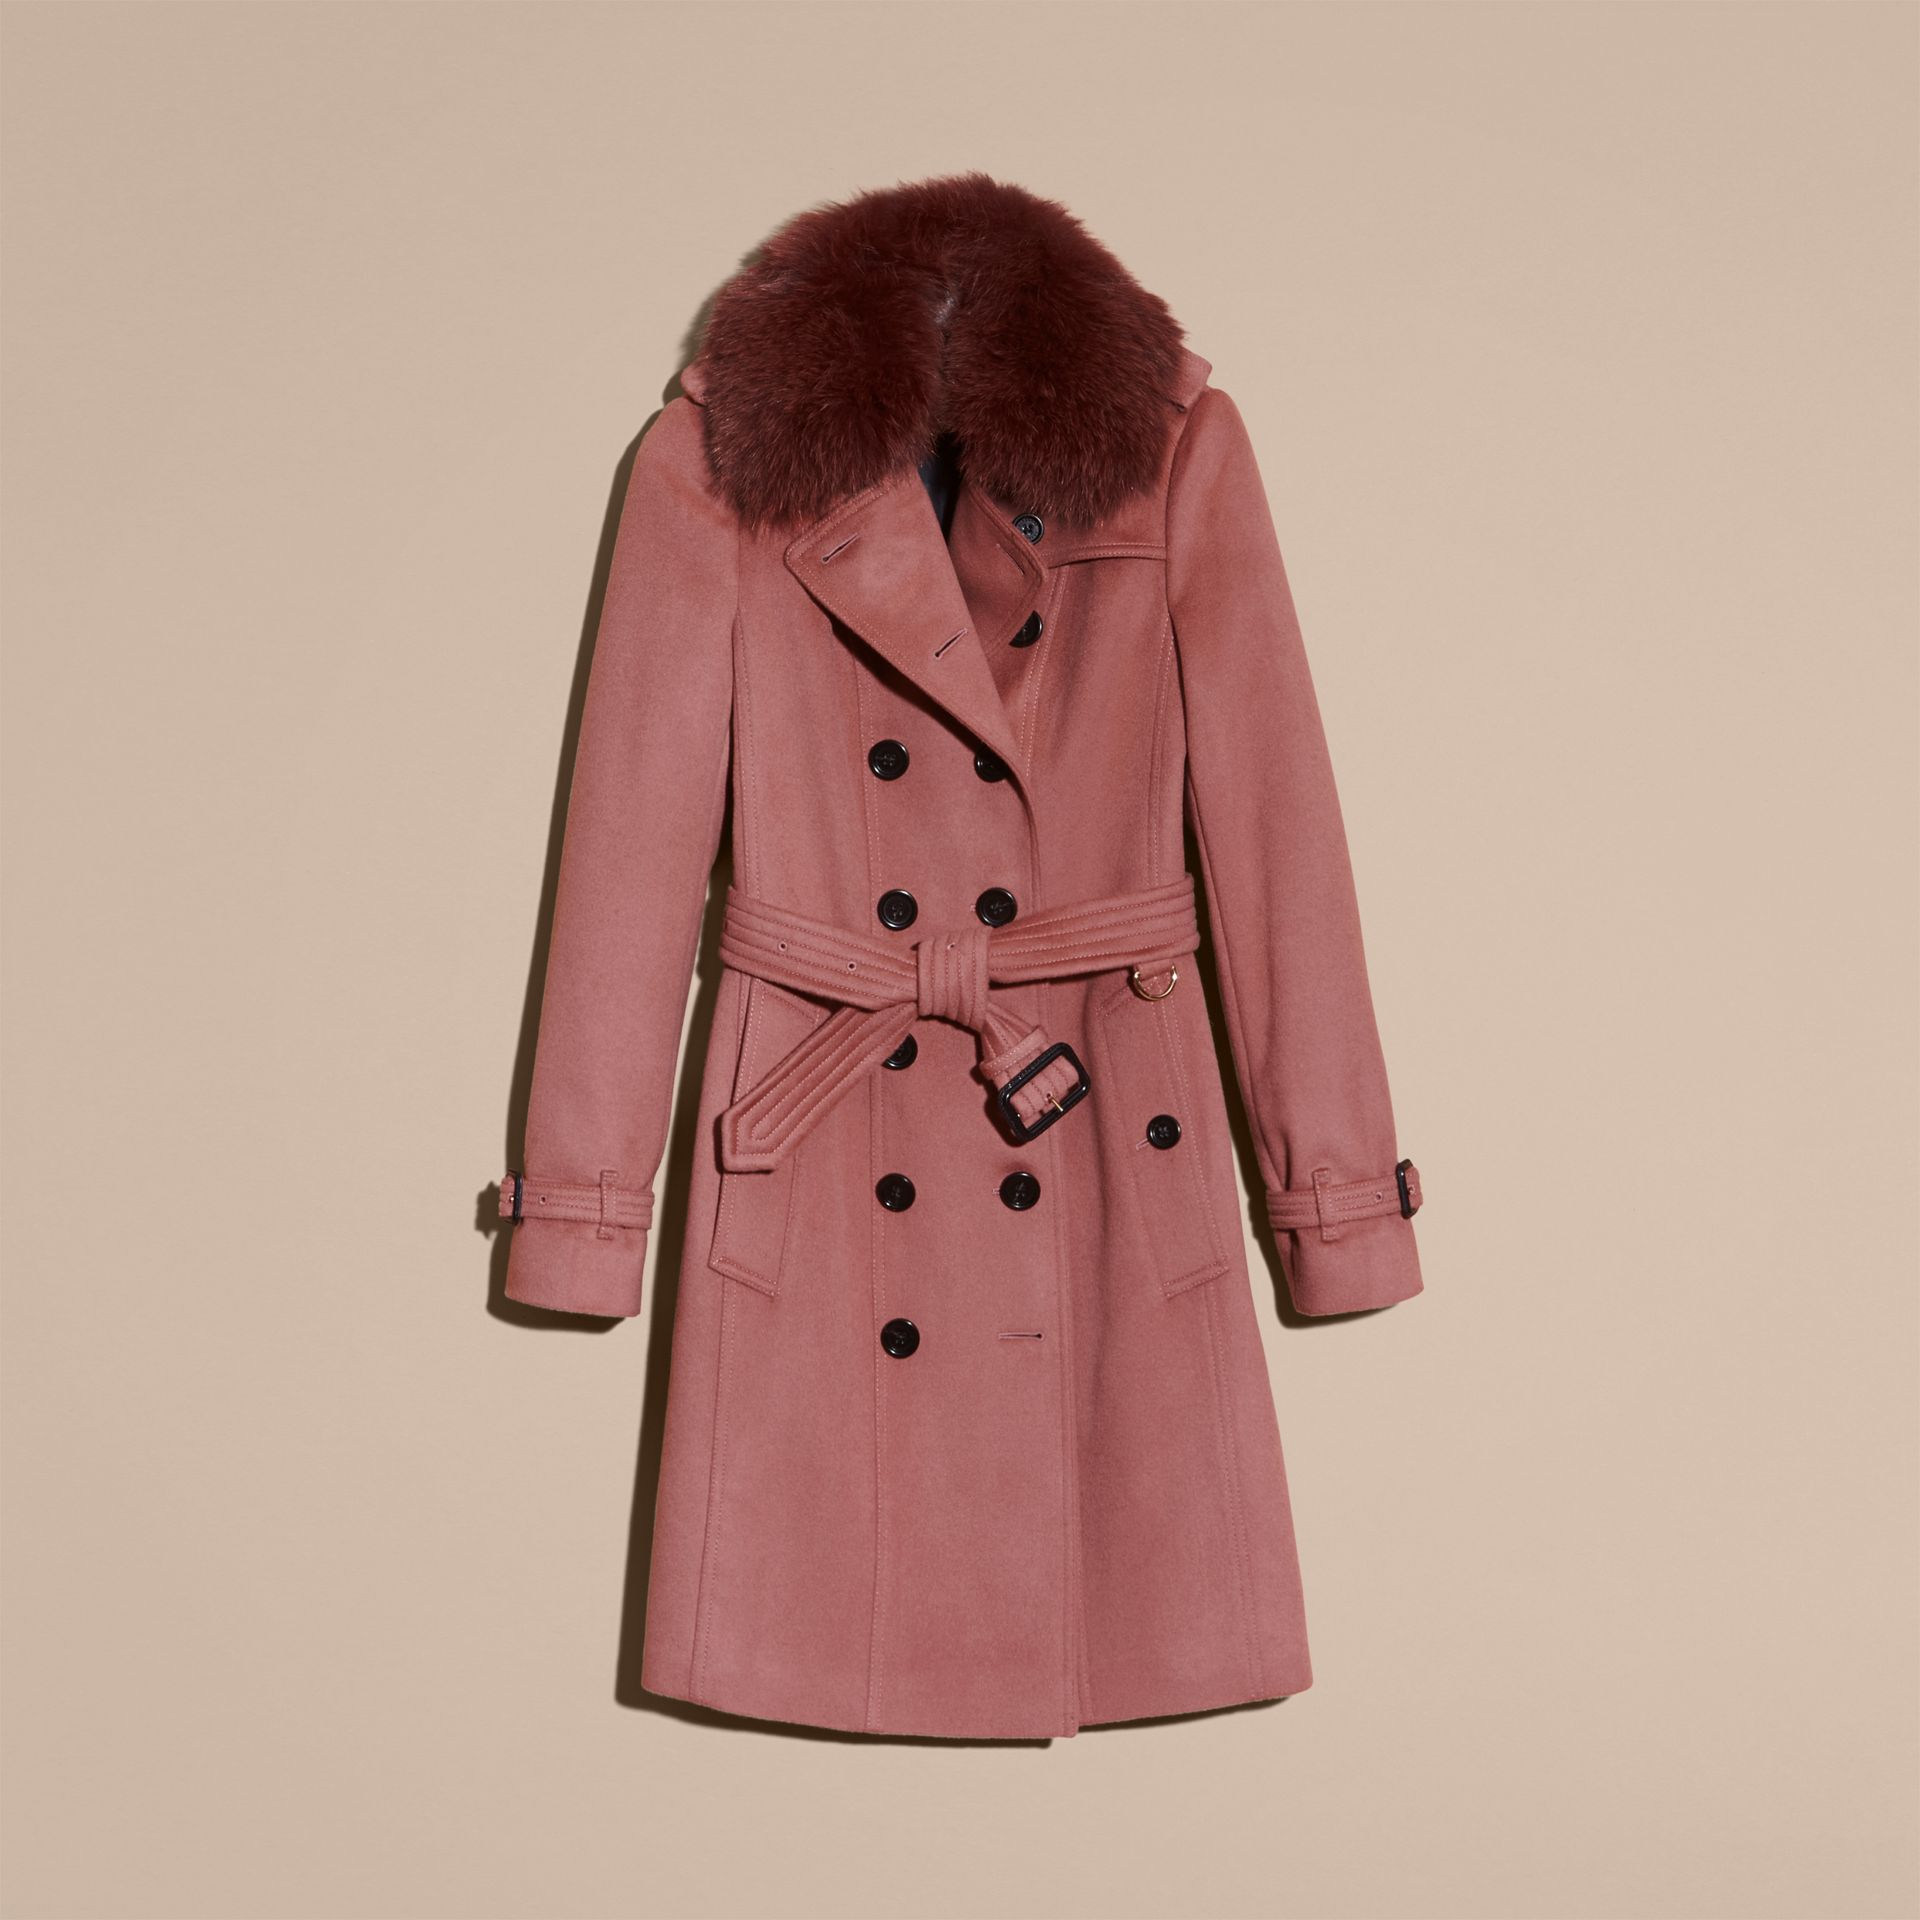 Antique rose Wool Cashmere Trench Coat with Detachable Fur Collar - gallery image 4